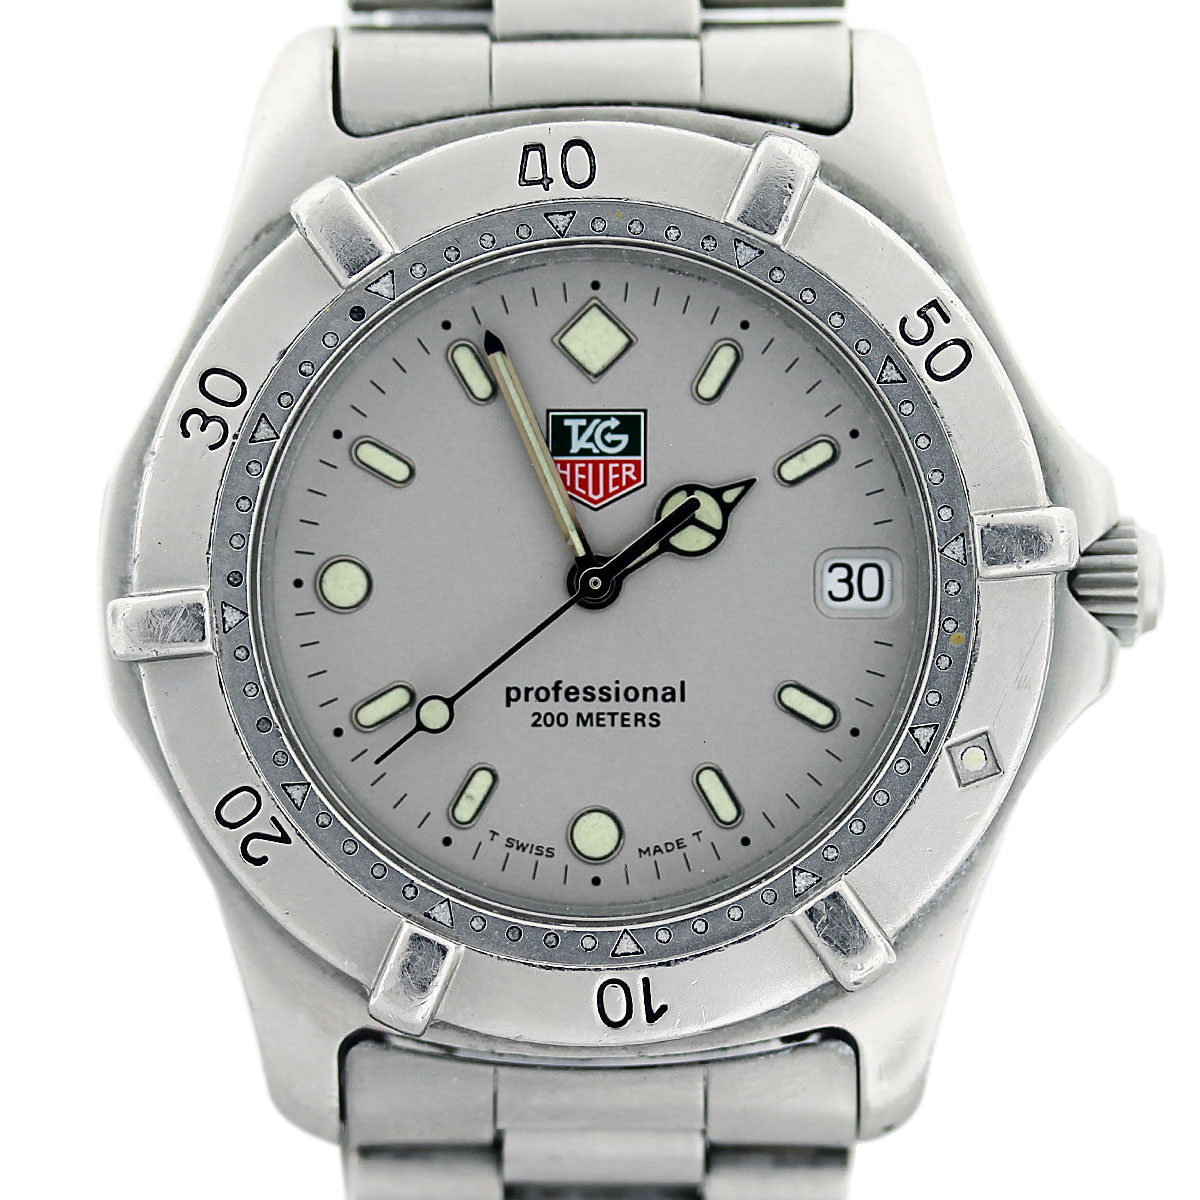 tag heuer wi1114 0 professional stainless steel mens watch boca raton. Black Bedroom Furniture Sets. Home Design Ideas